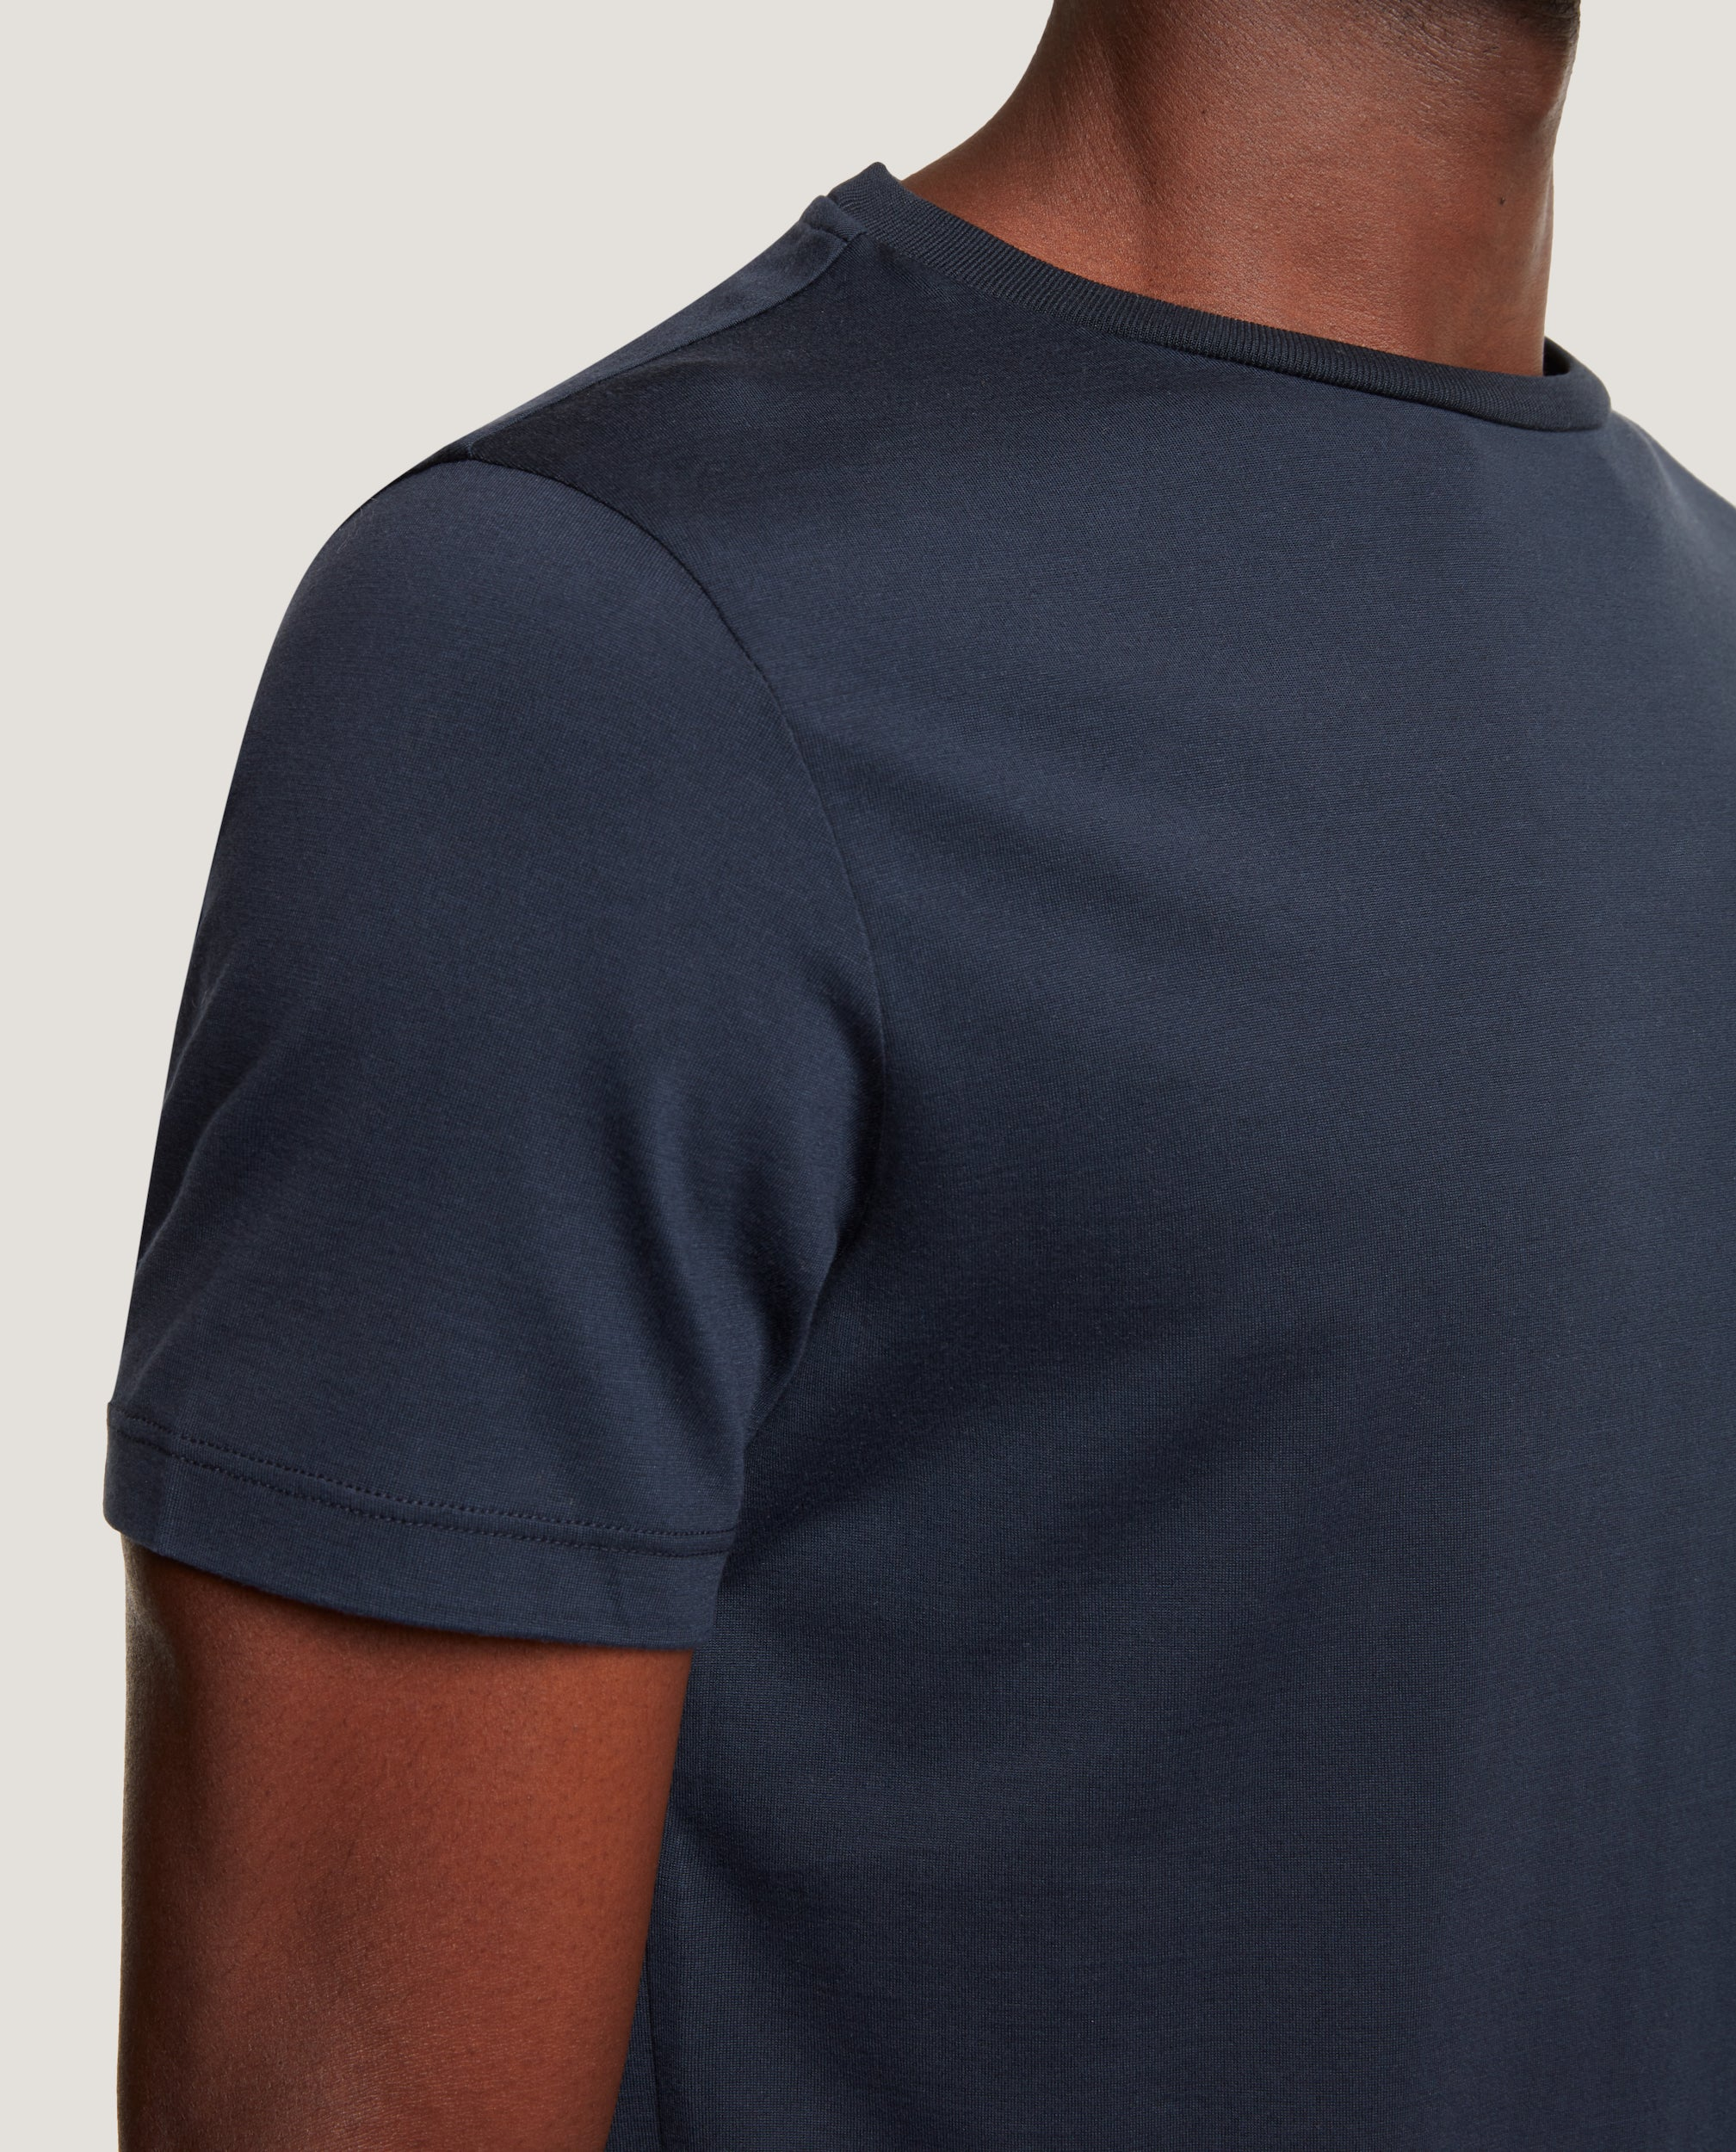 LOTHAR T-shirt | Silk Blend | Night Blue